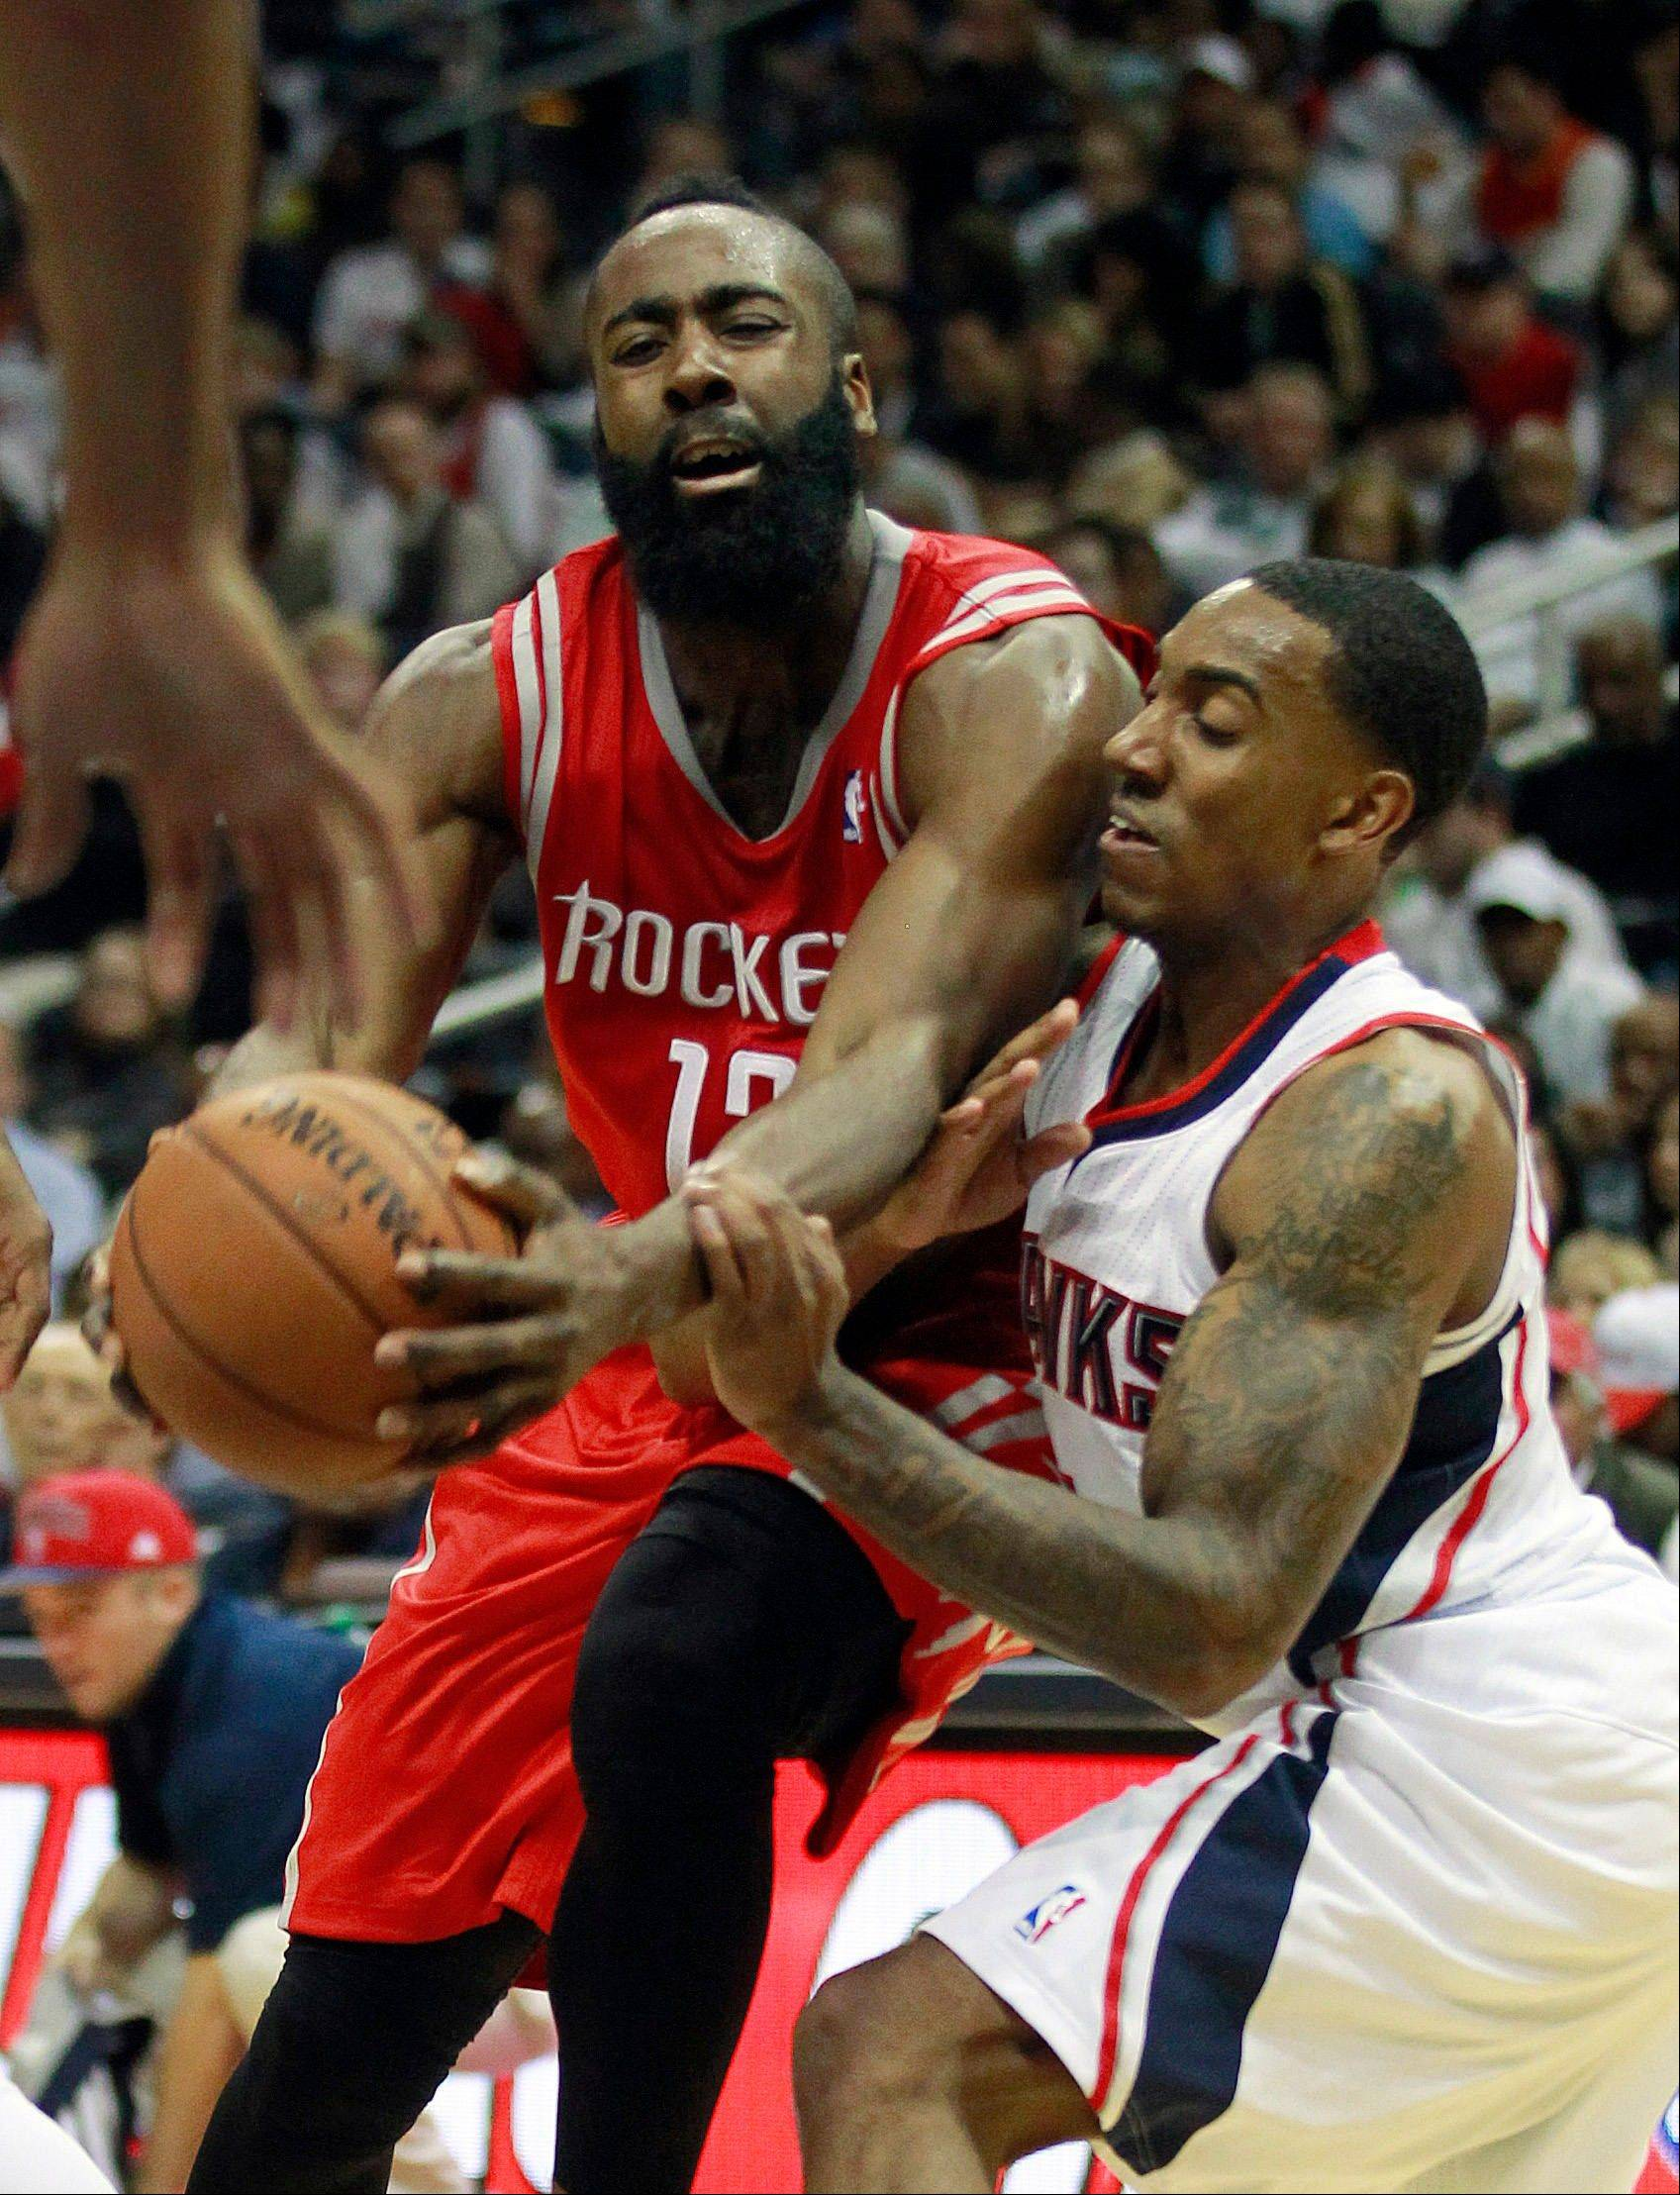 Houston Rockets shooting guard James Harden drives against Atlanta Hawks point guard Jeff Teague, right, Friday during the second half in Atlanta. Houston won 109-102.